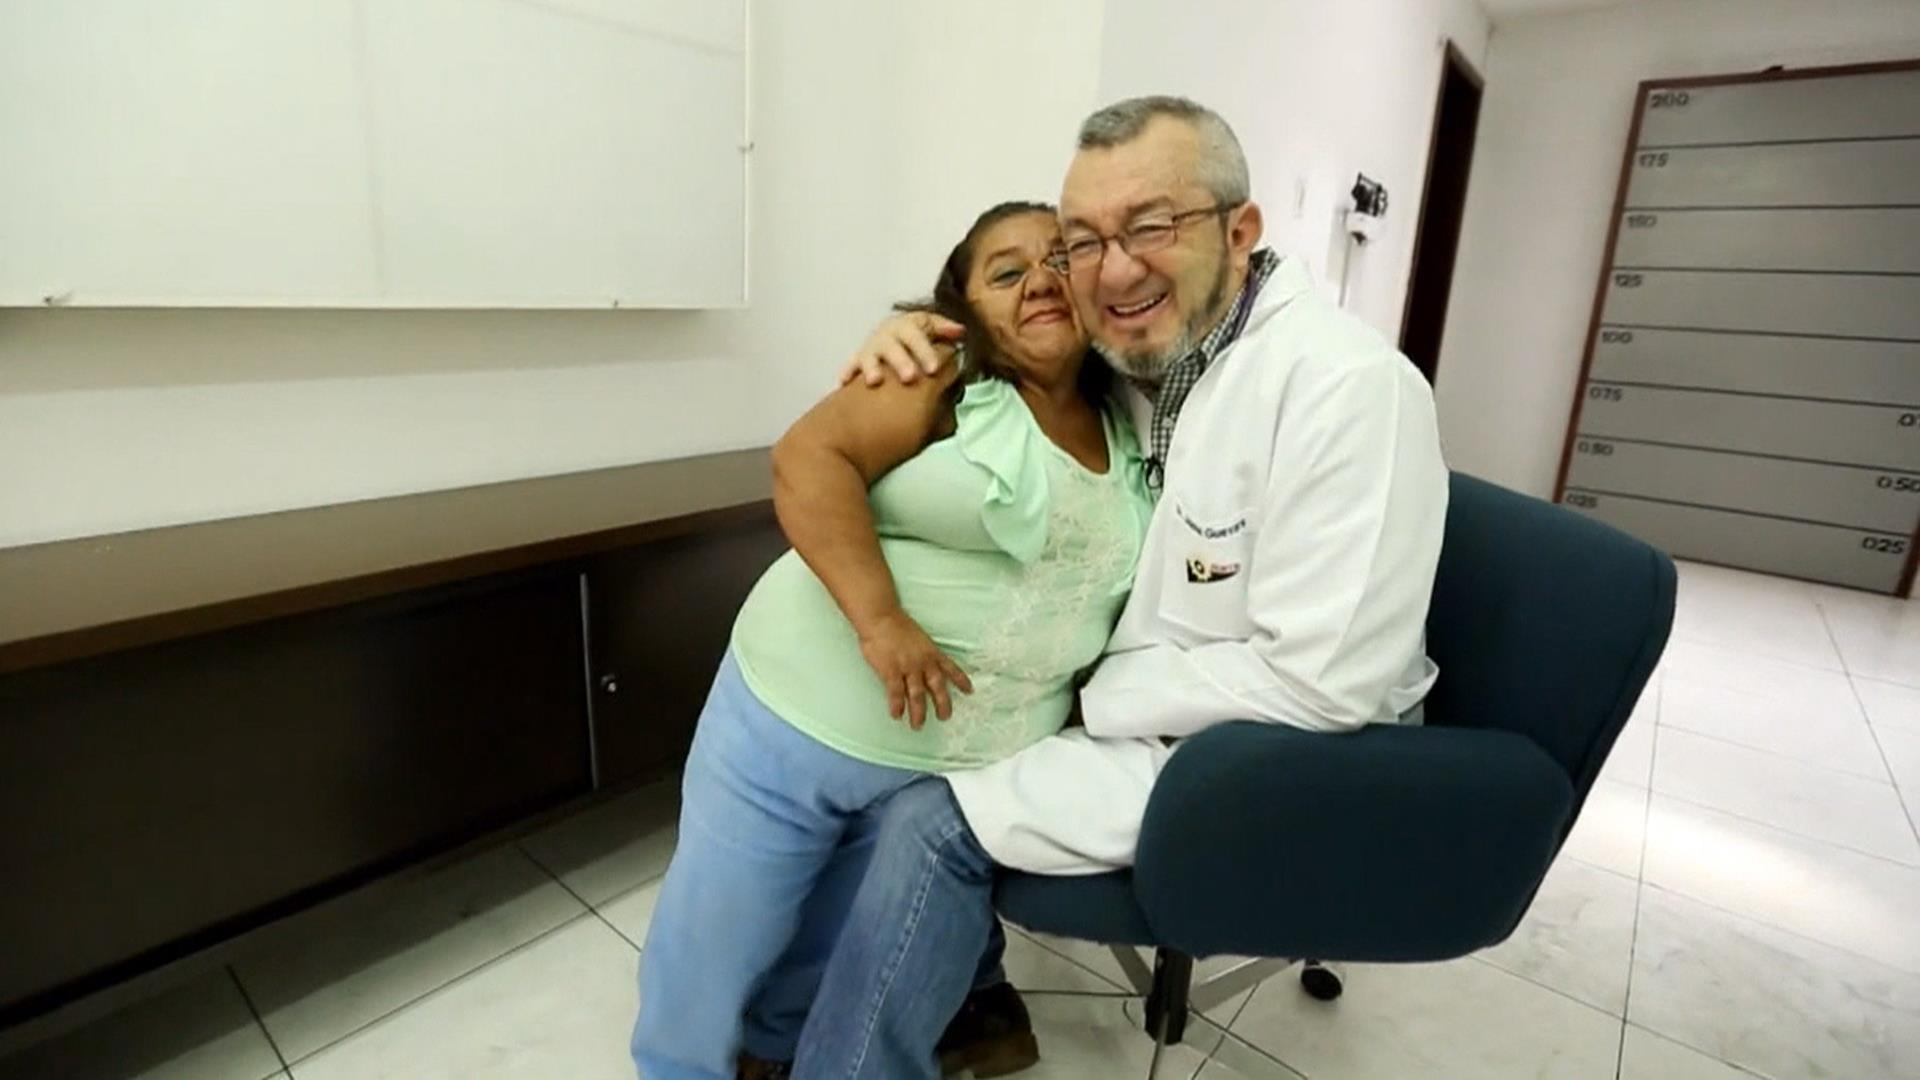 Little People of Ecuador: Laron Syndrome May Unlock Cancer, Diabetes Cure